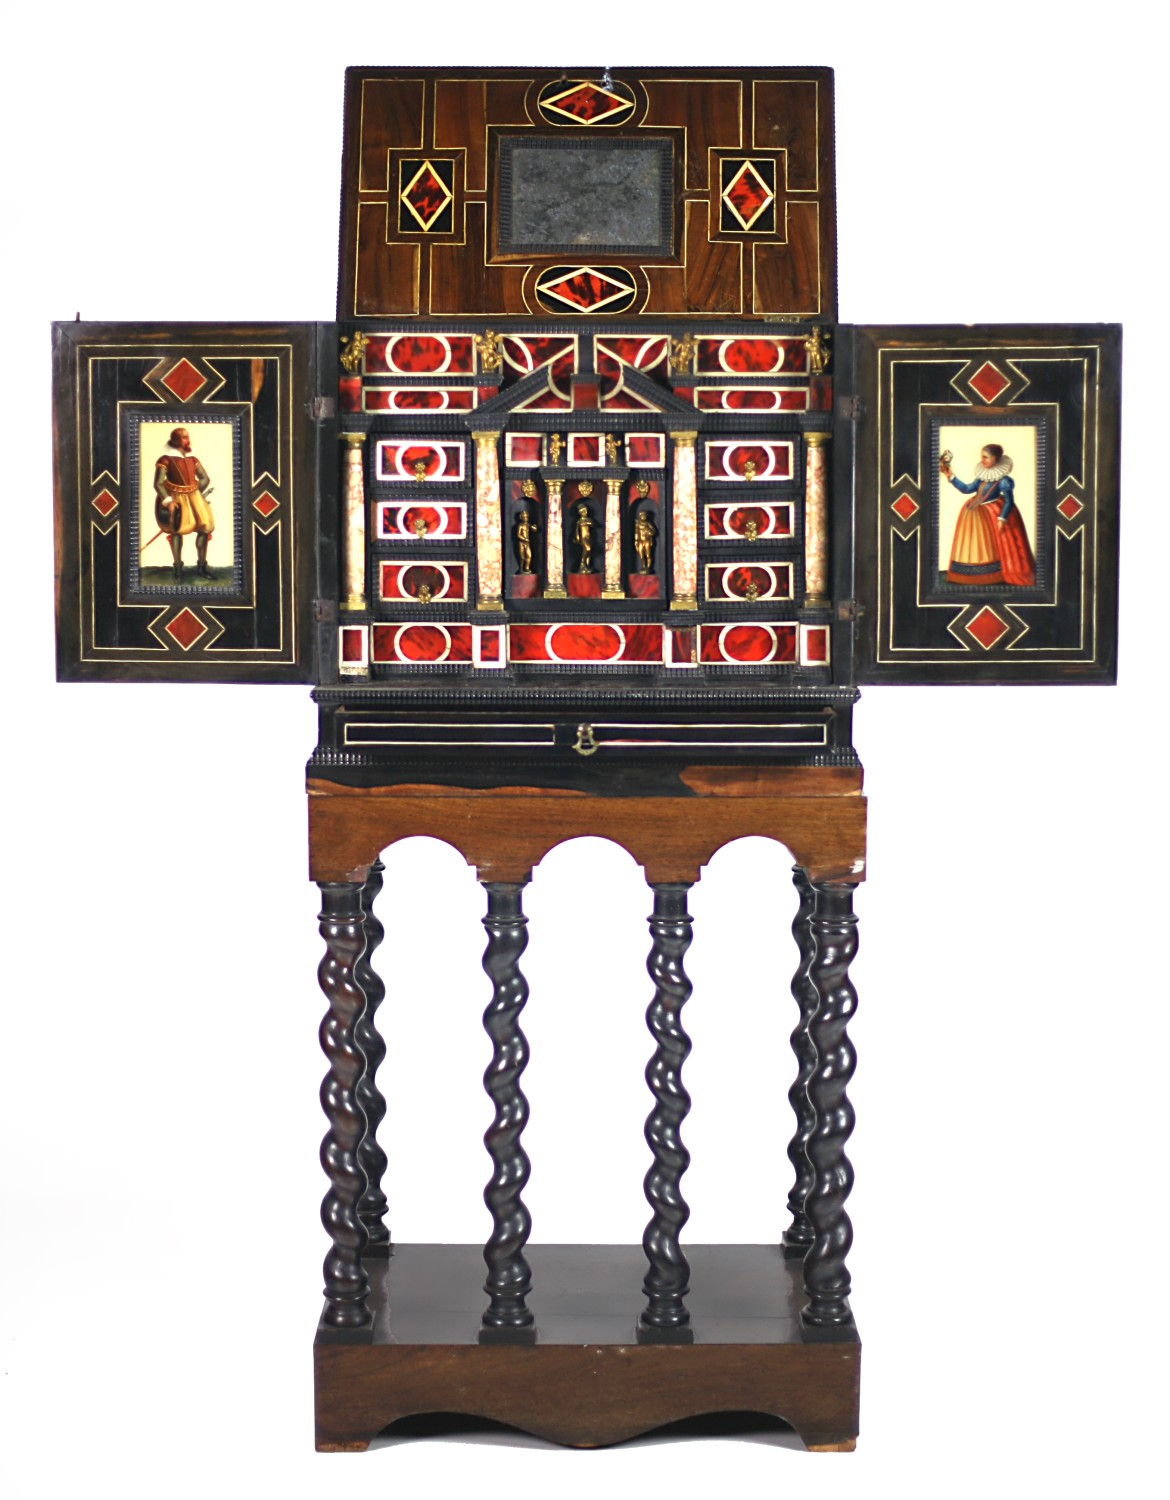 Lot 270 - A rare and attractive antique coromandel wood Cabinet on Stand, the inlaid canopy lift top with